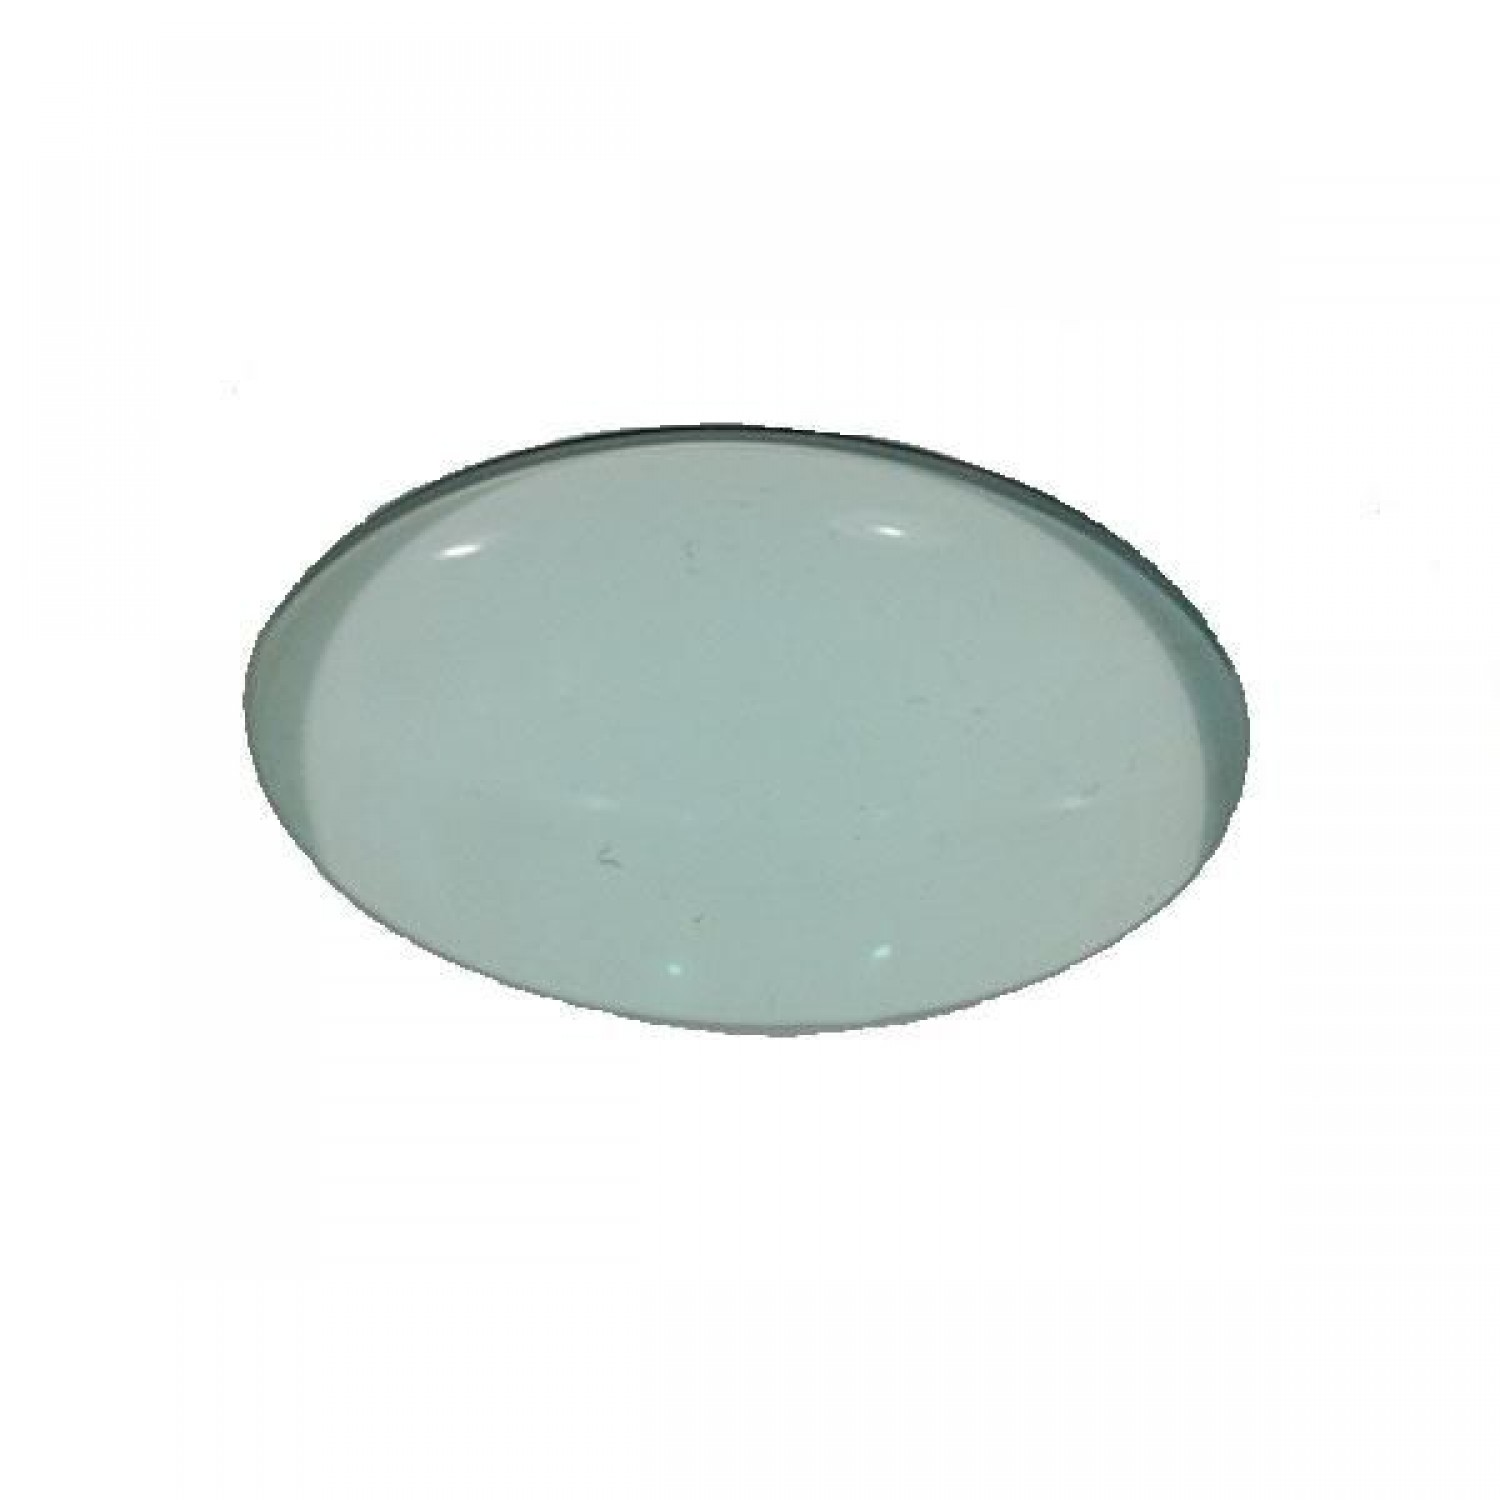 Luxo 36639 Magnifier Lens 5 Diopter